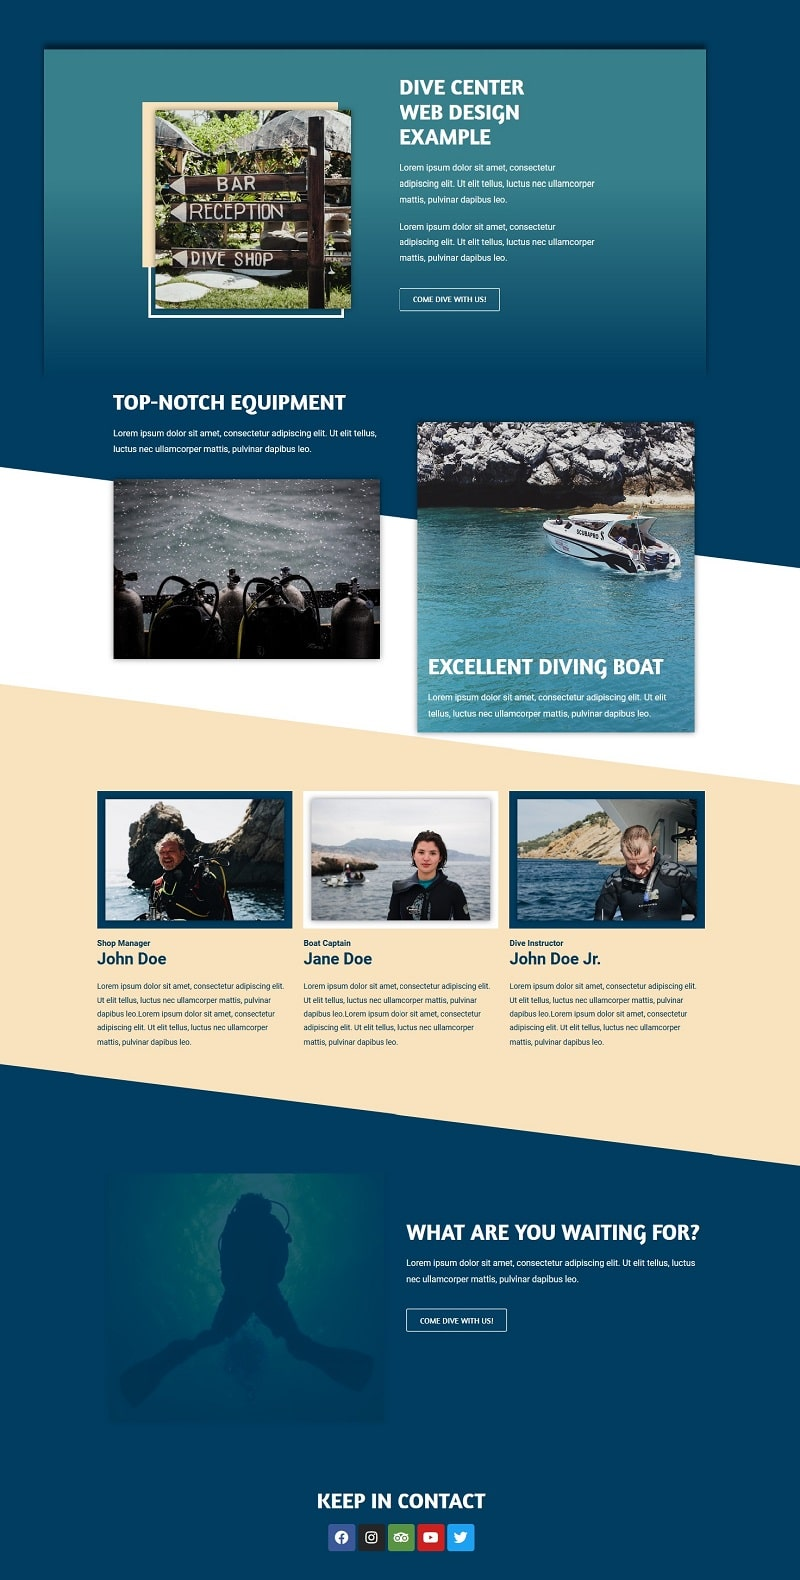 dive center landing page design including team